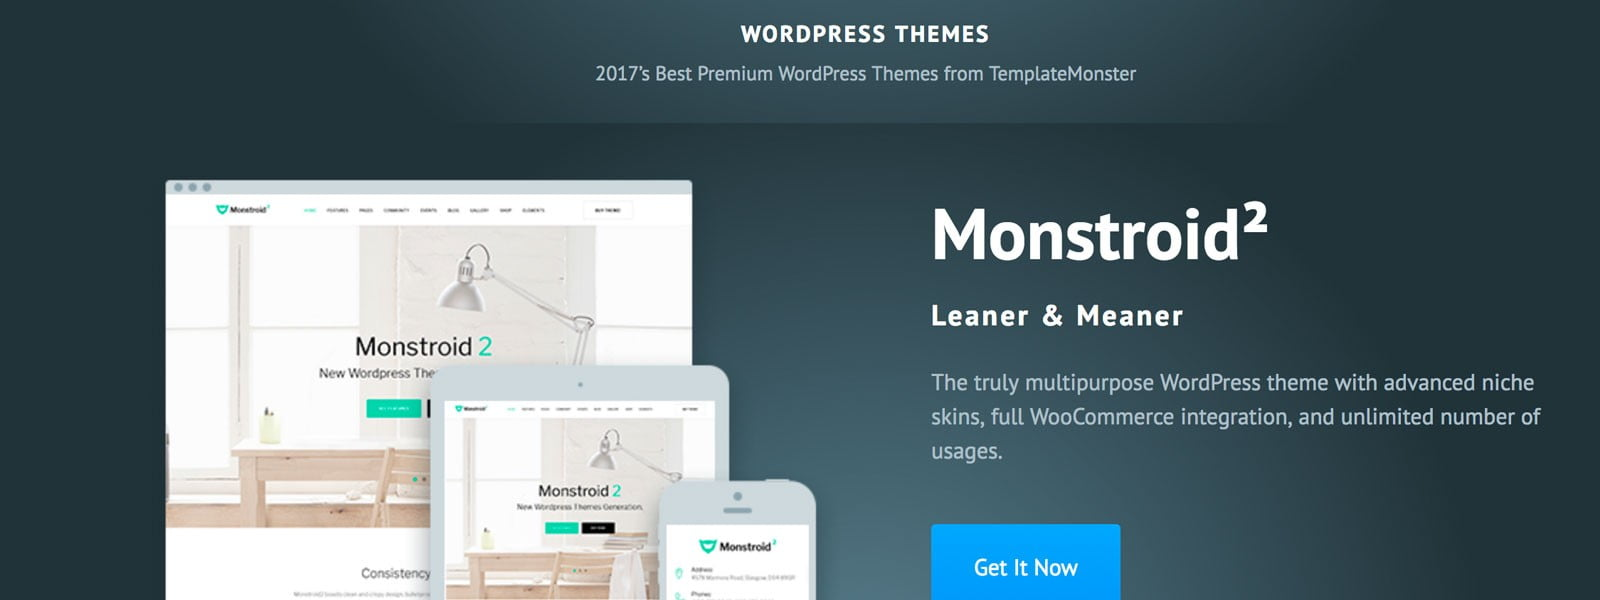 A WordPress Theme for Every Project?